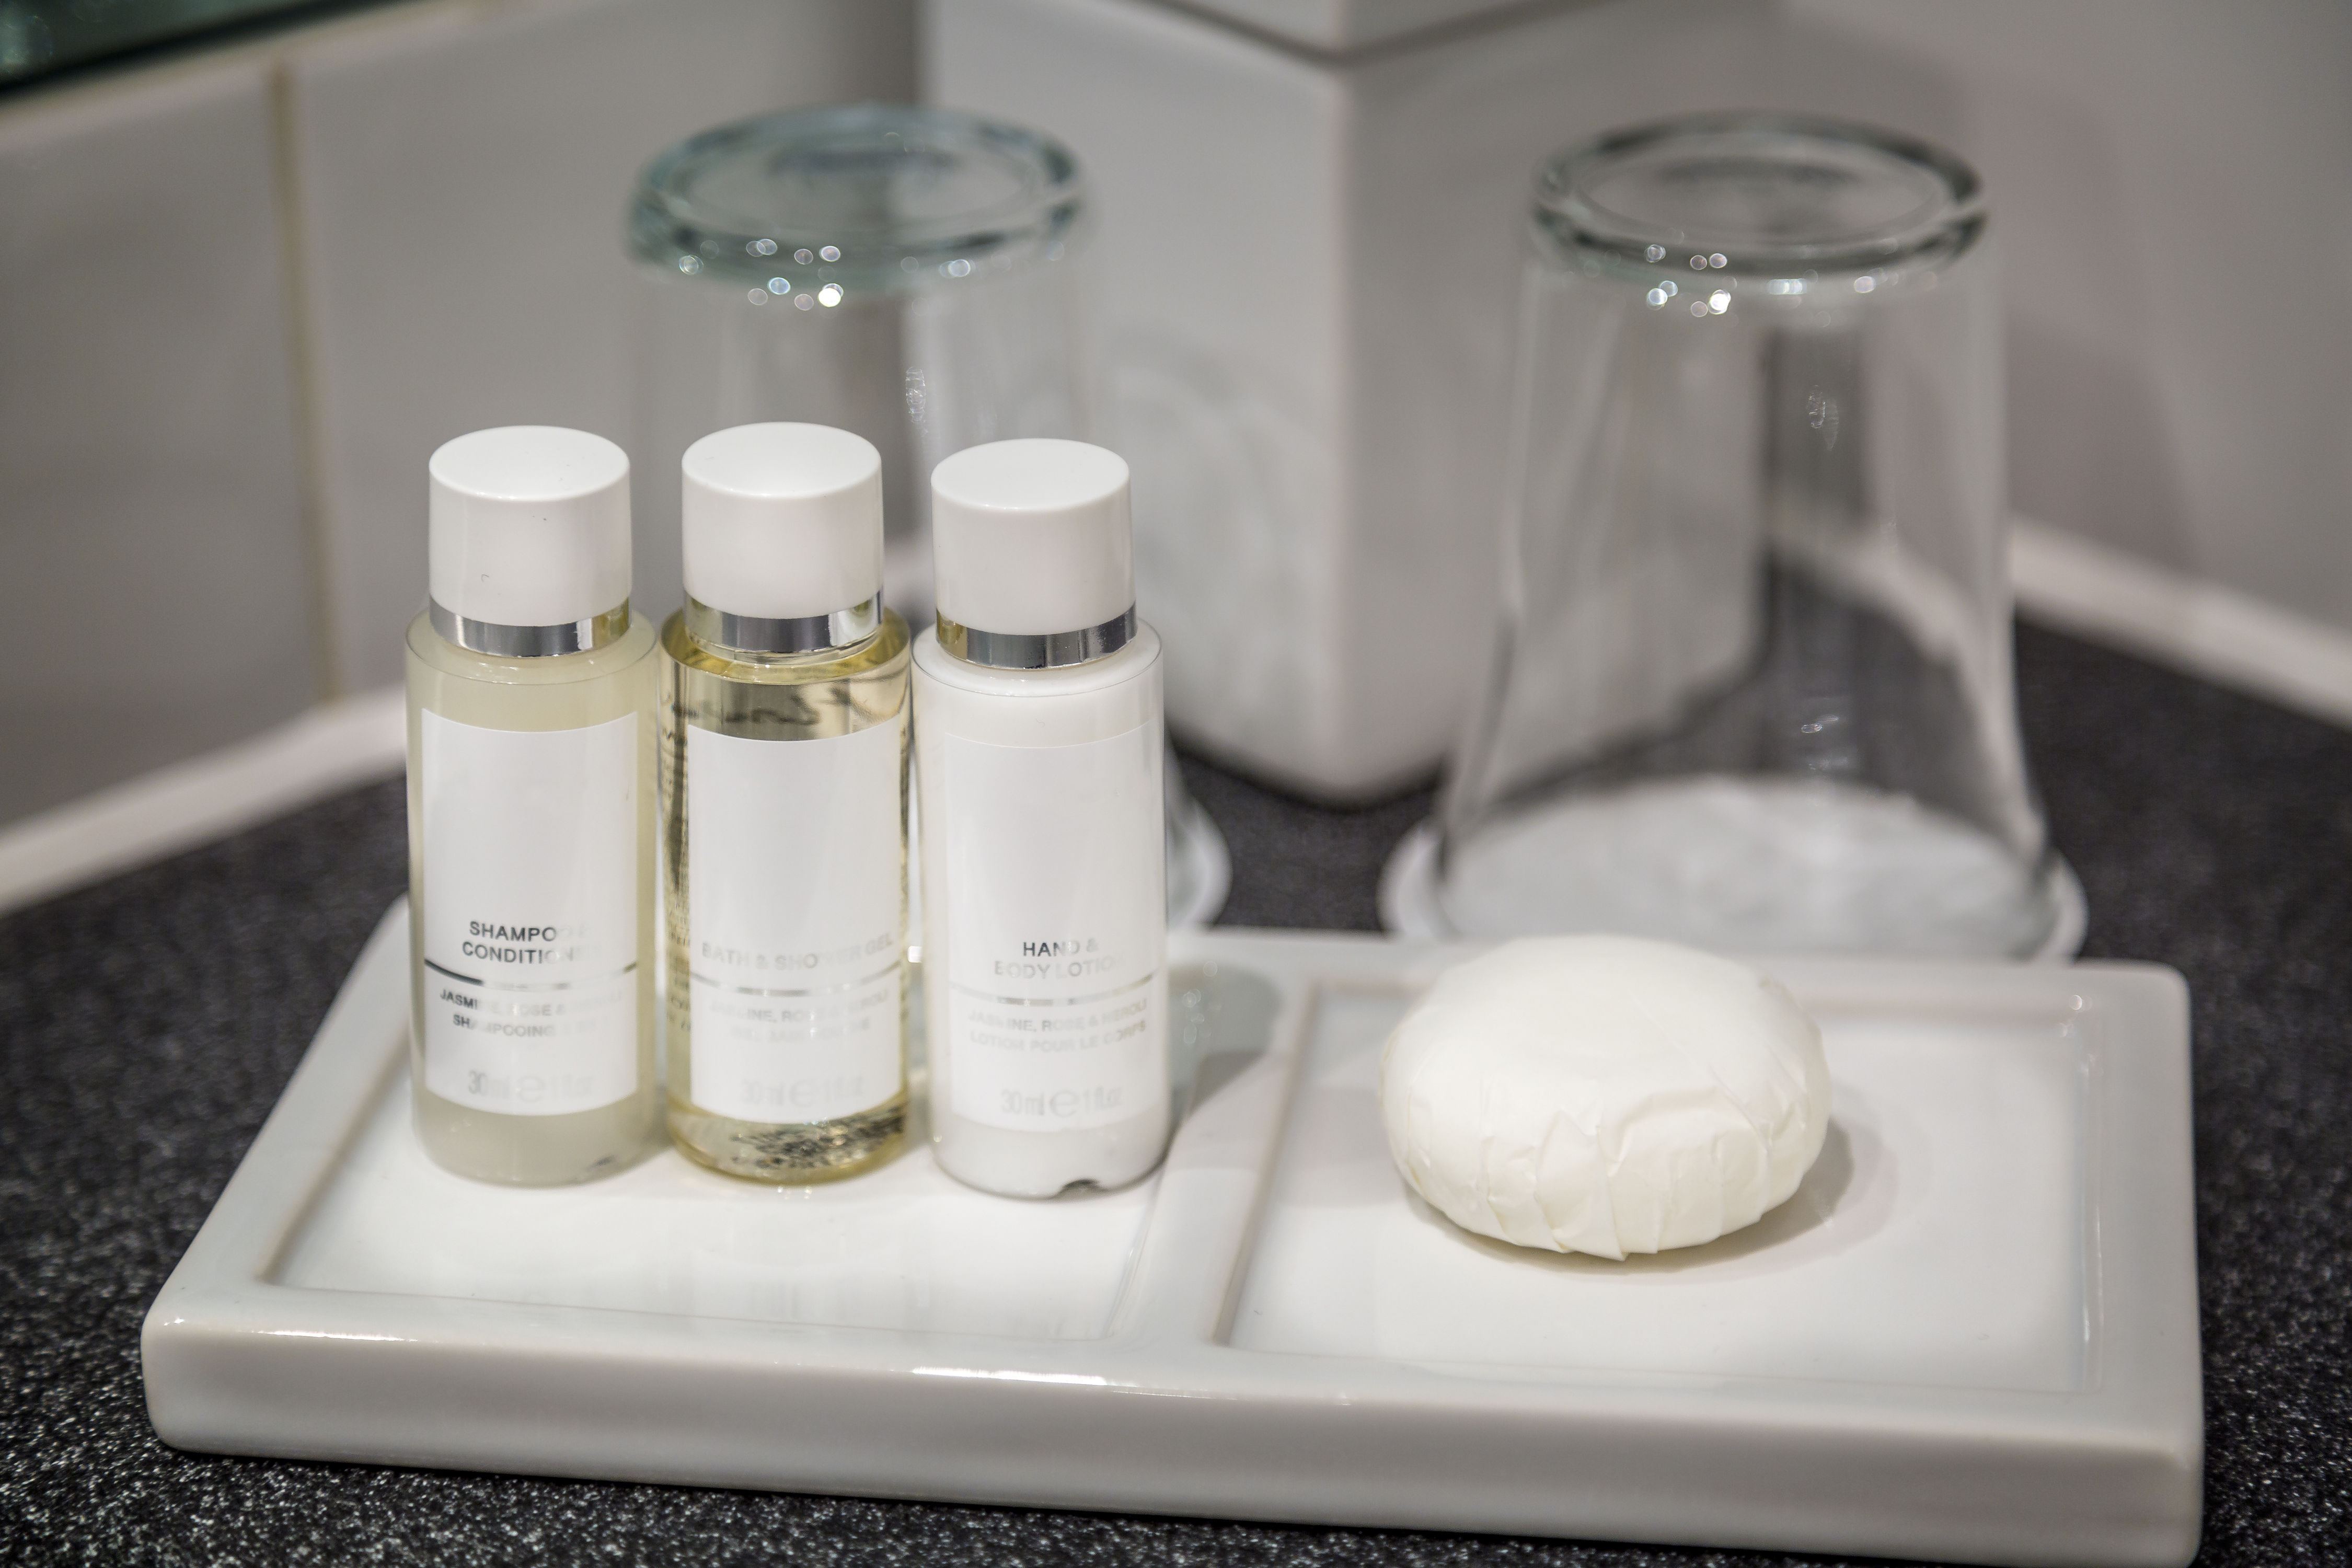 Here's What Happens To Leftover Hotel Soap